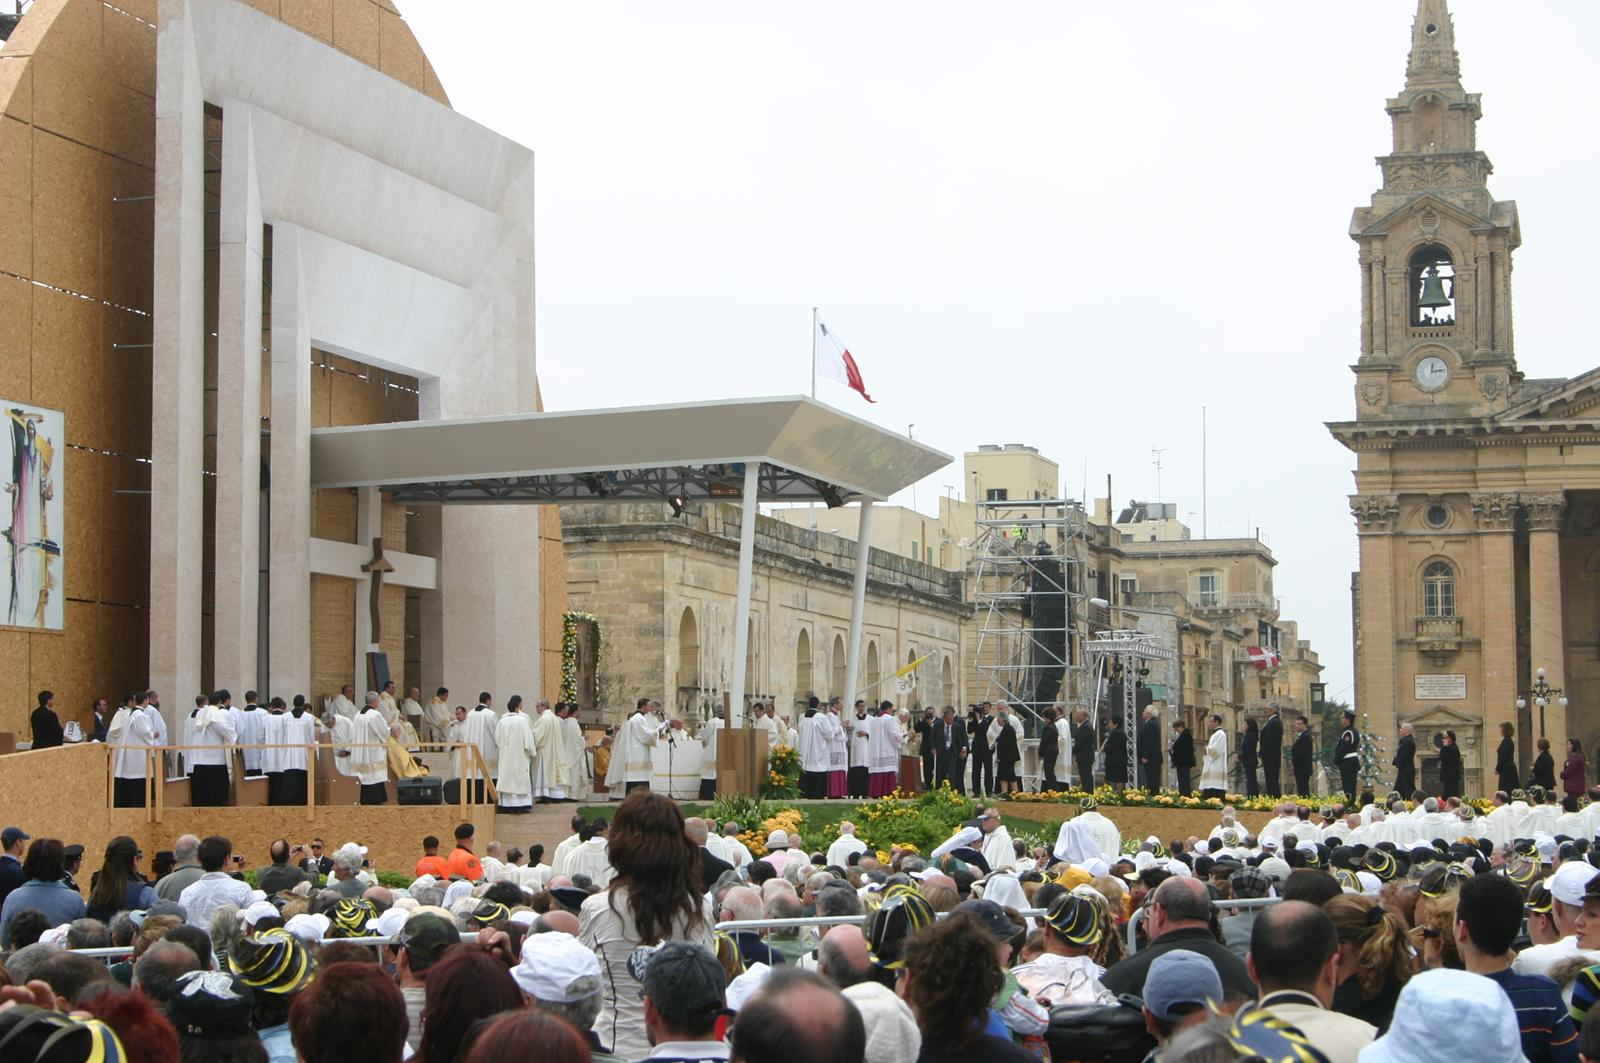 Pope's visit - 18th April 2010 / Granaries